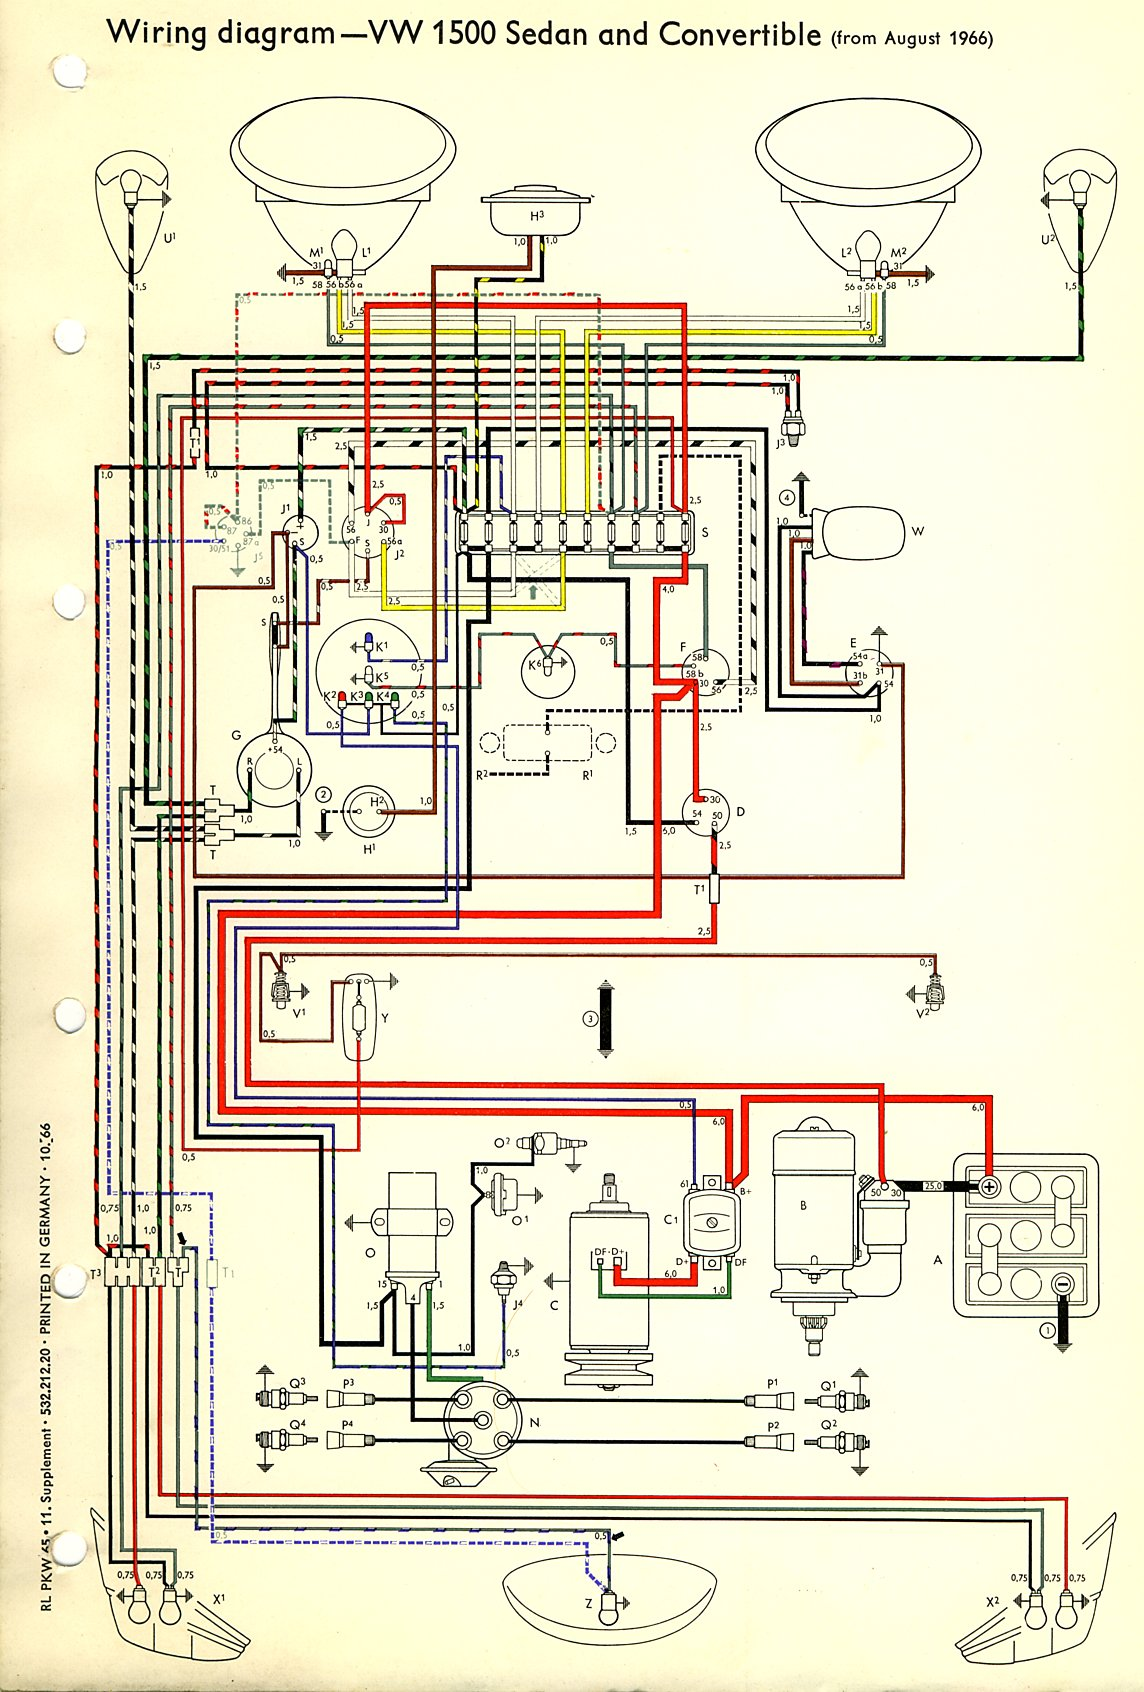 bug_67 1967 beetle wiring diagram thegoldenbug com wiring diagram for 71 super beetle at soozxer.org